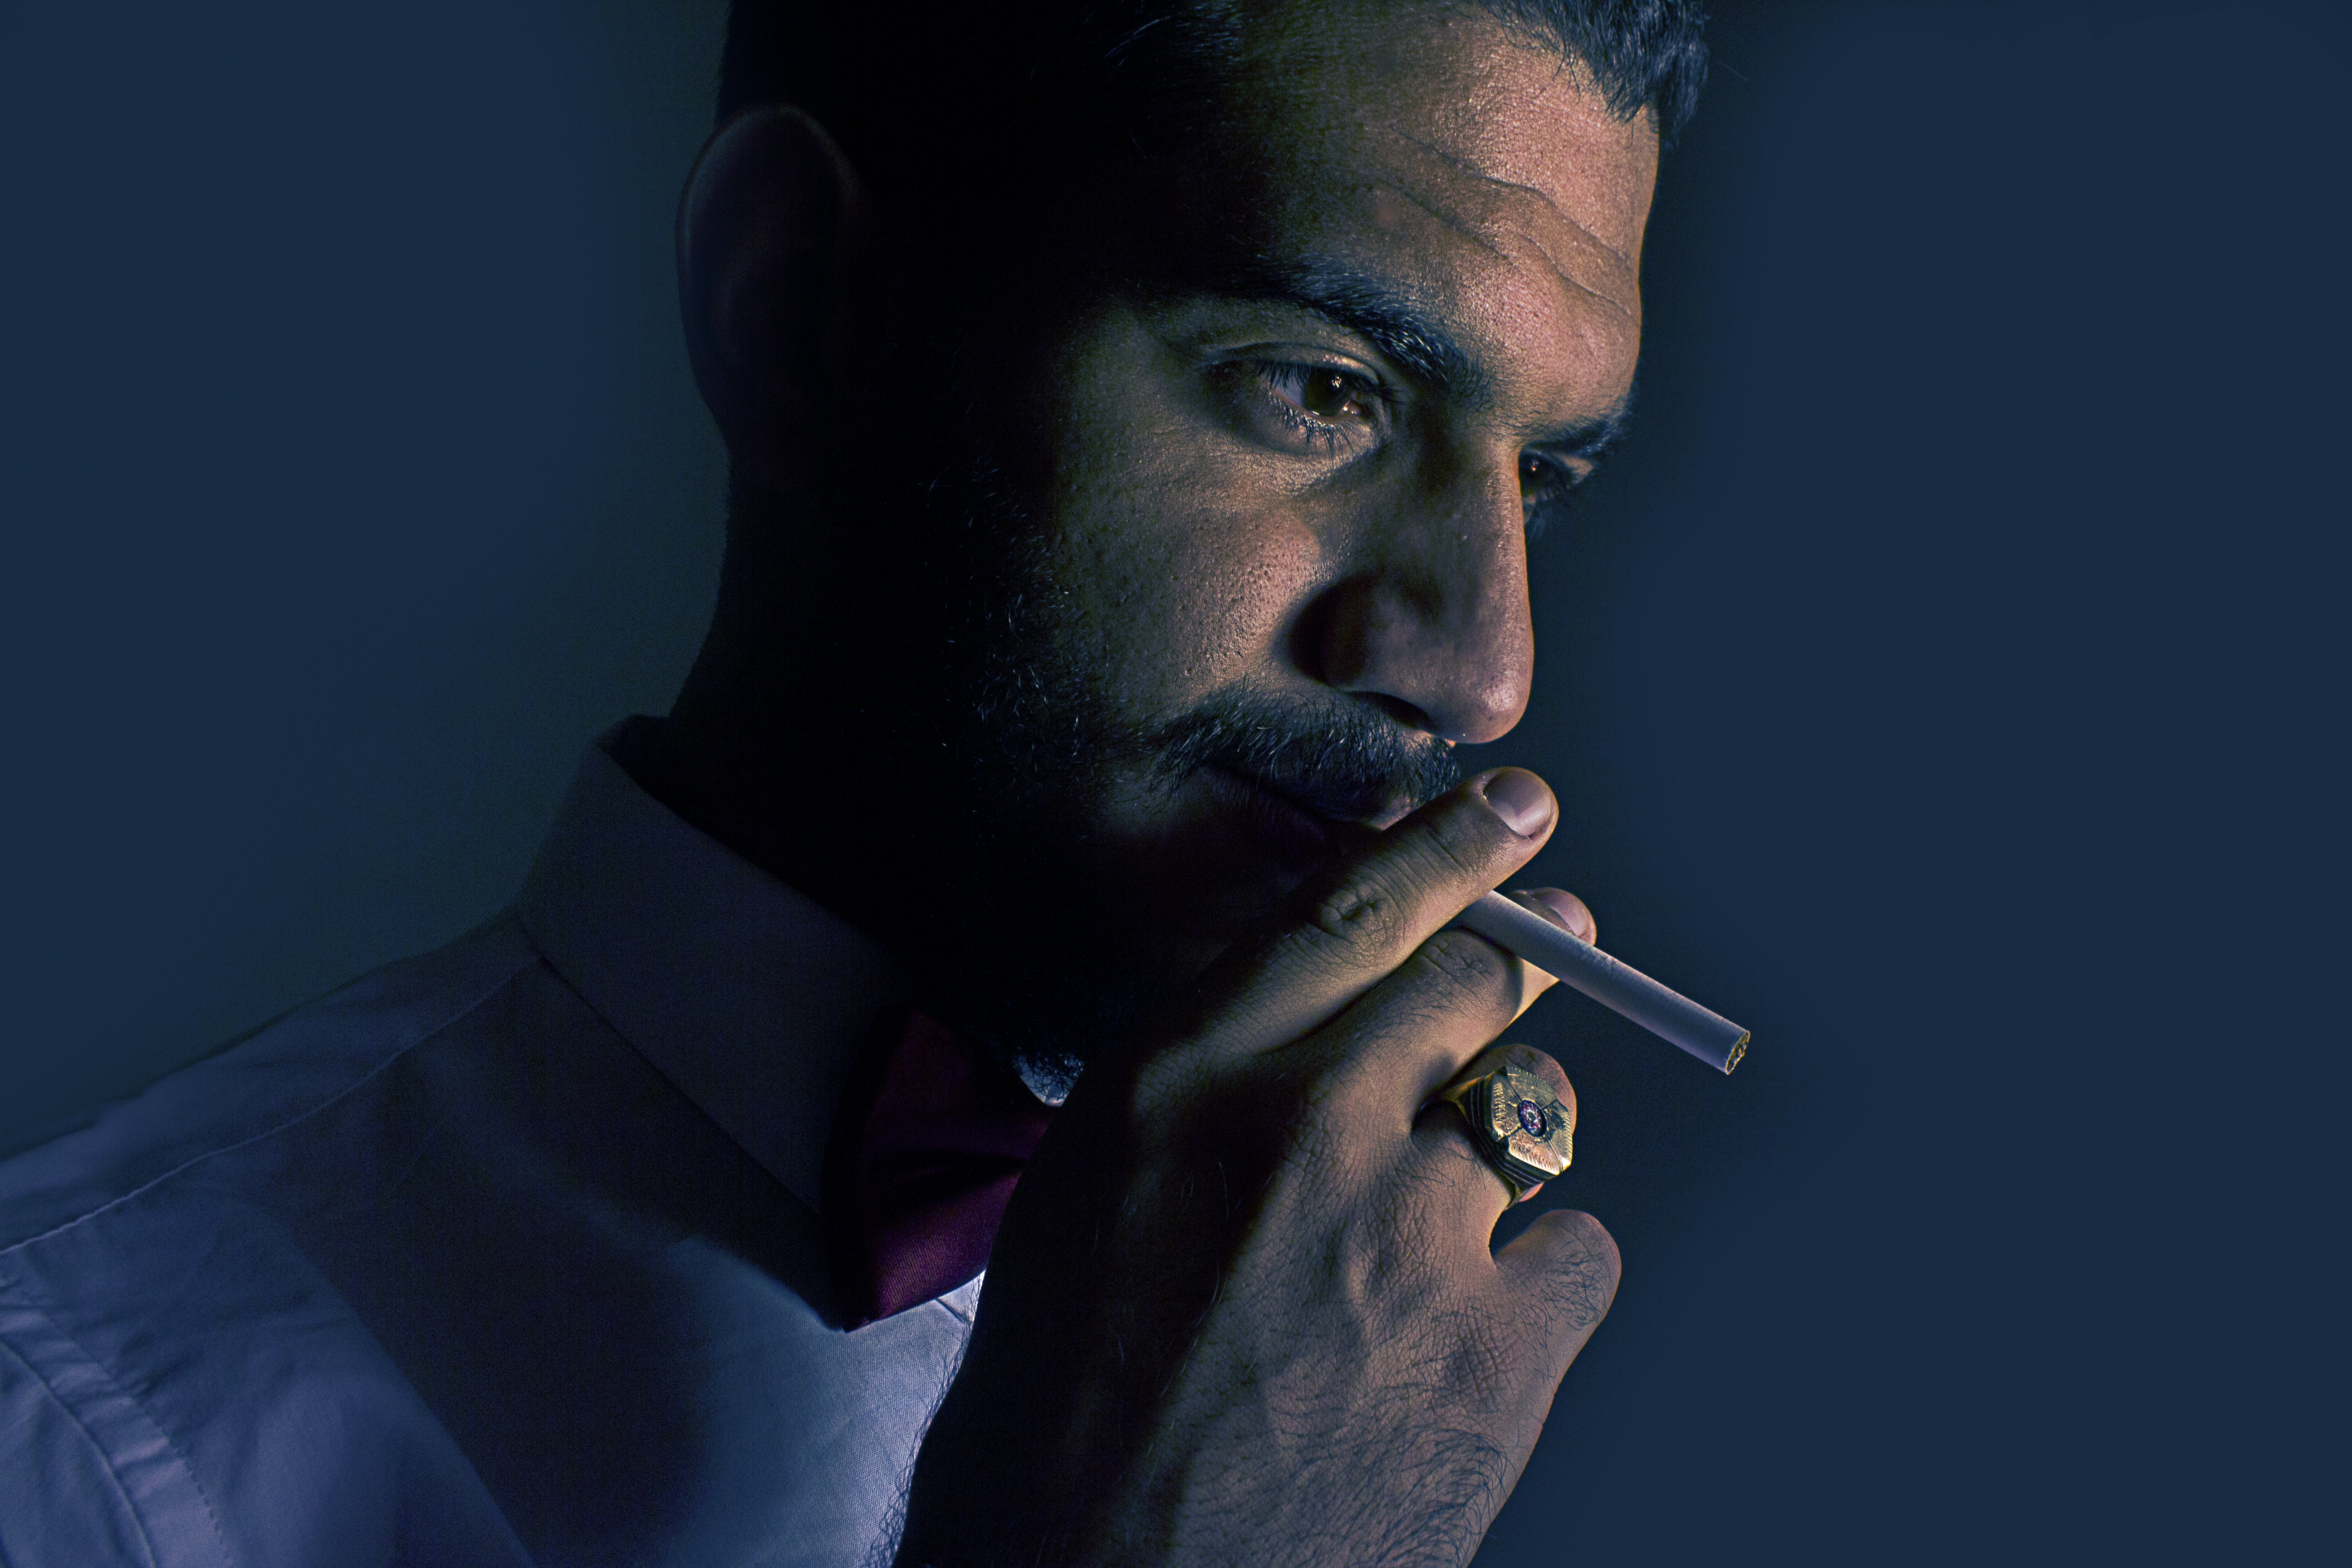 man holding cigarette stick